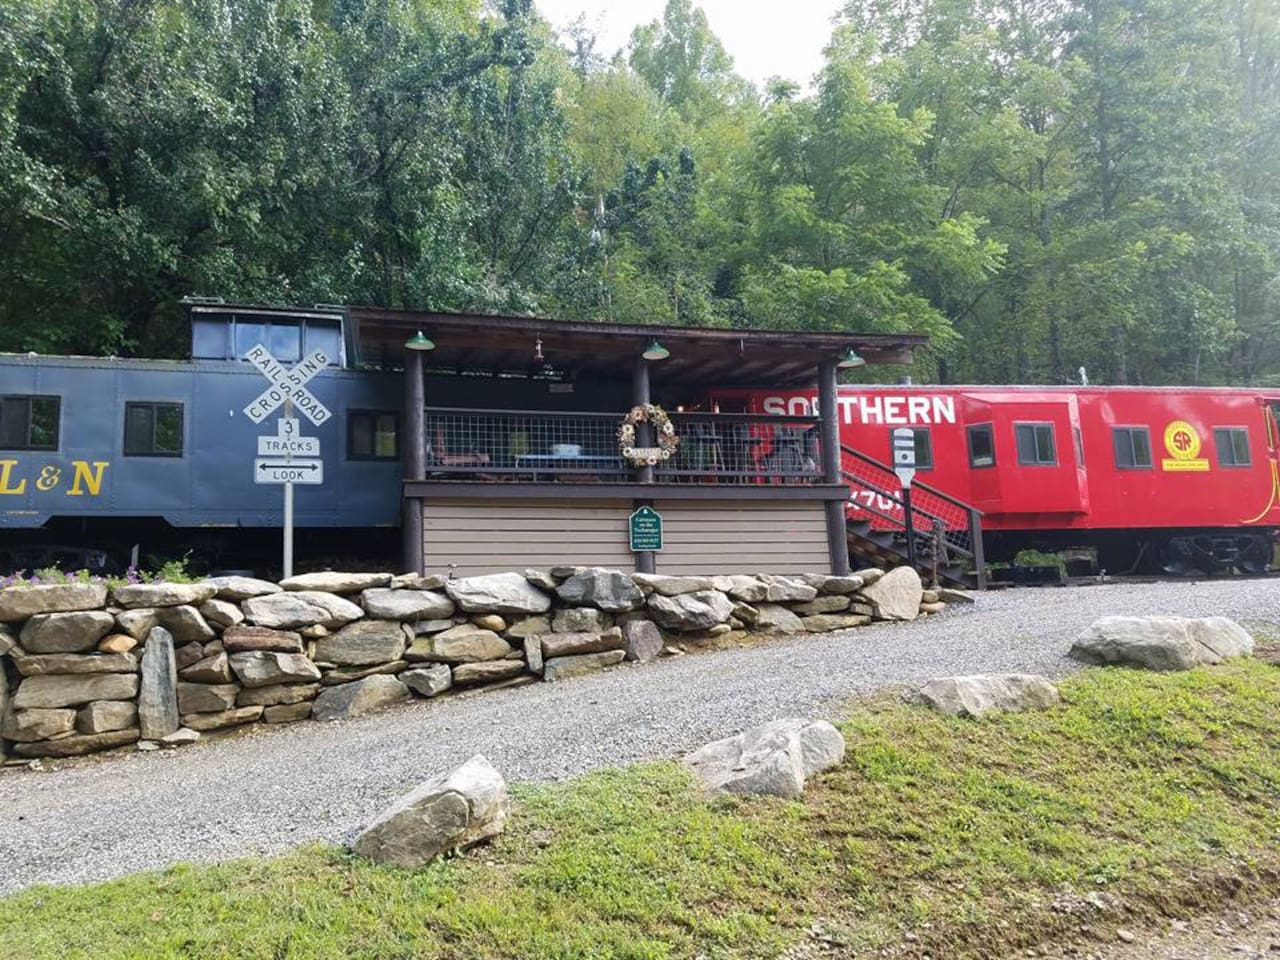 Two fully renovated cabooses made into one cozy vacation spot.